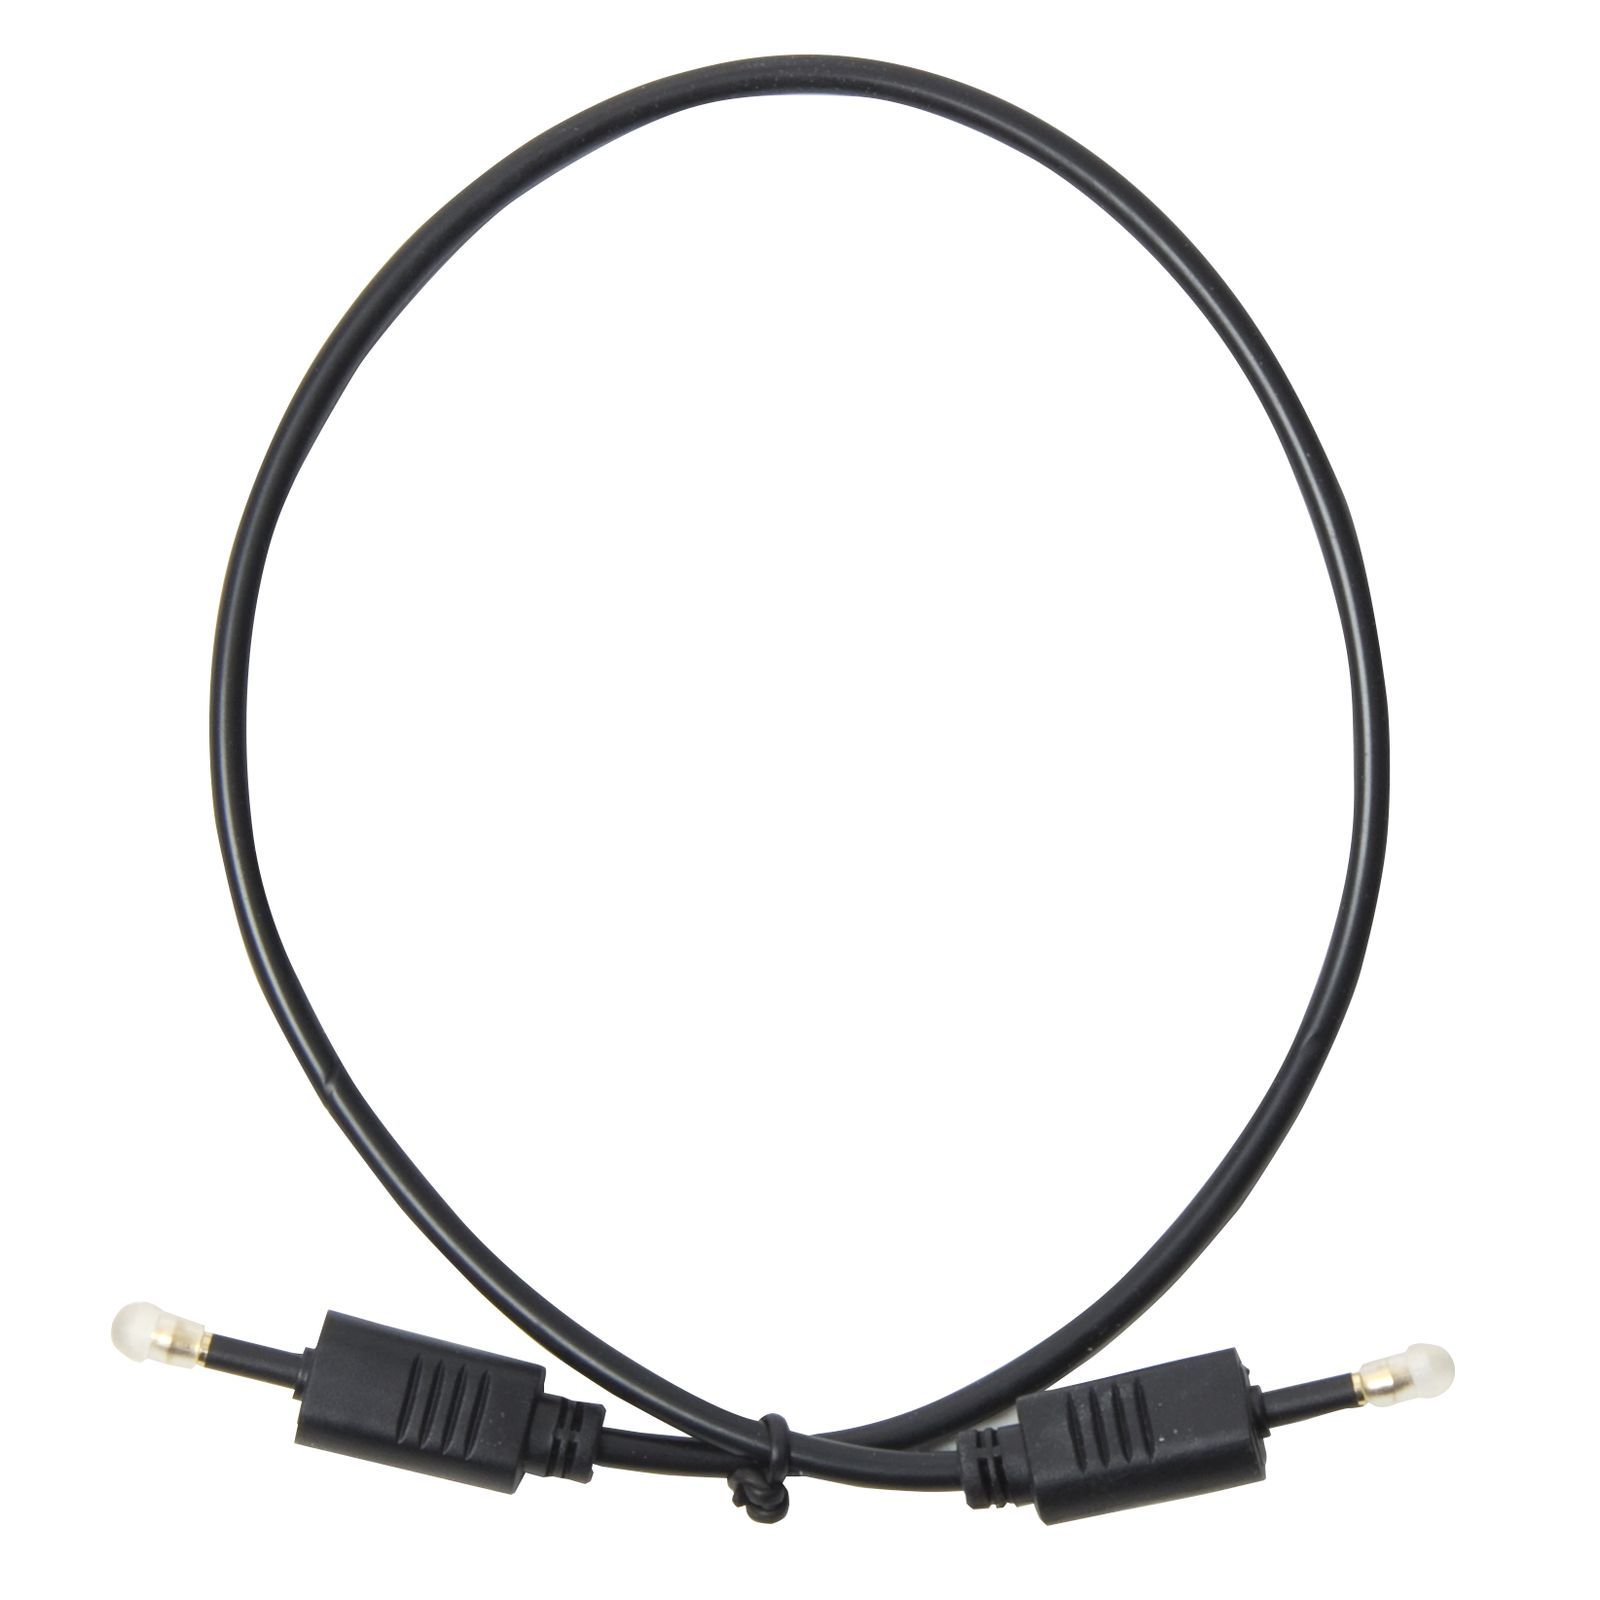 MUSIC STORE opticales Cable 0.5m 3.5mm => 3.5mm opt. Jack Produktbillede